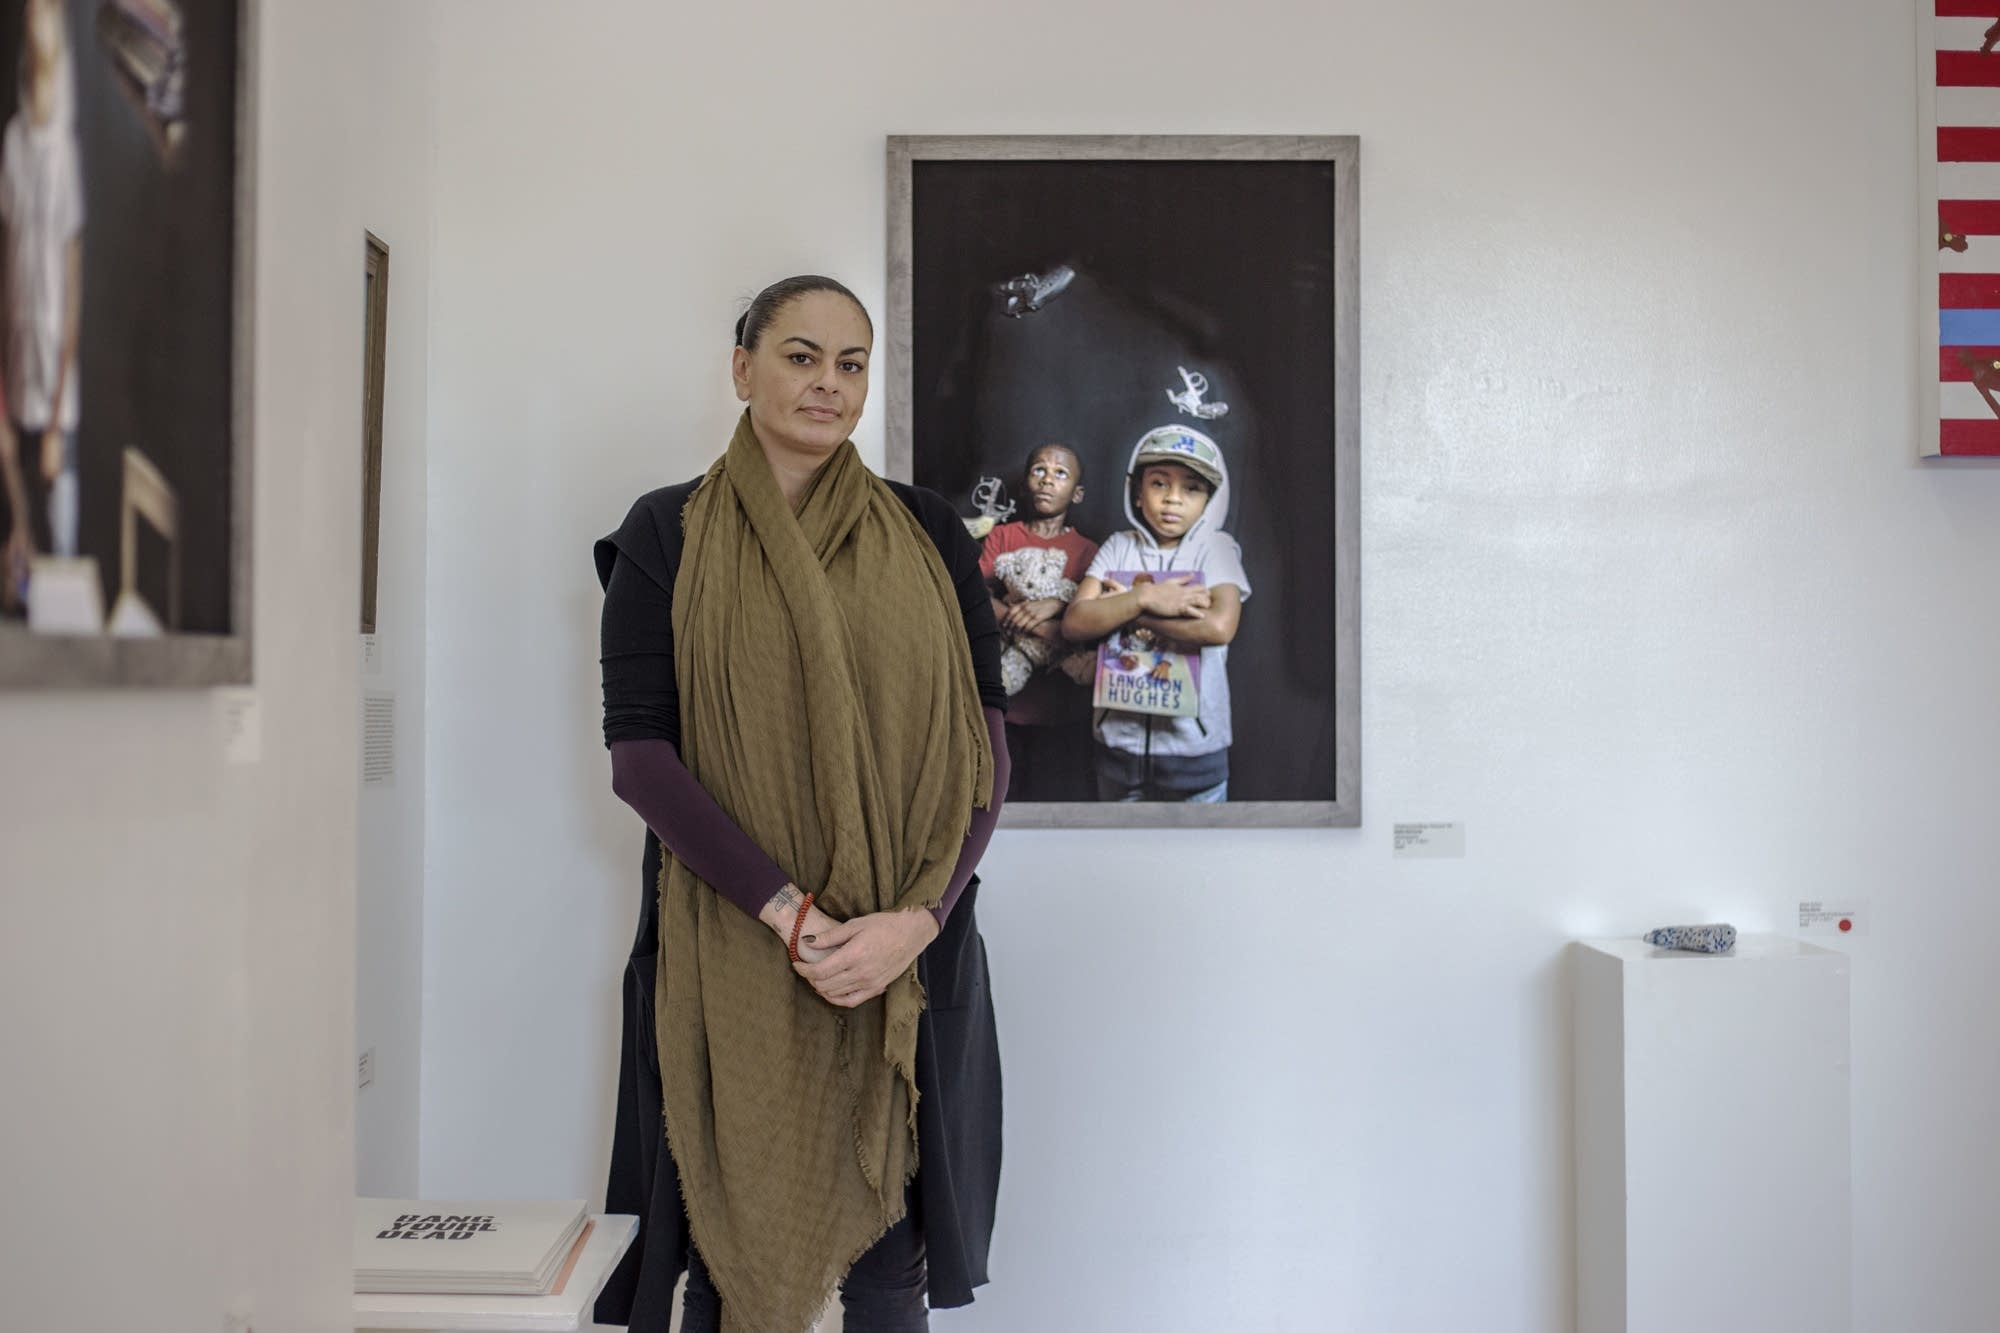 Nikki McComb poses next to her work at Gamut Gallery.